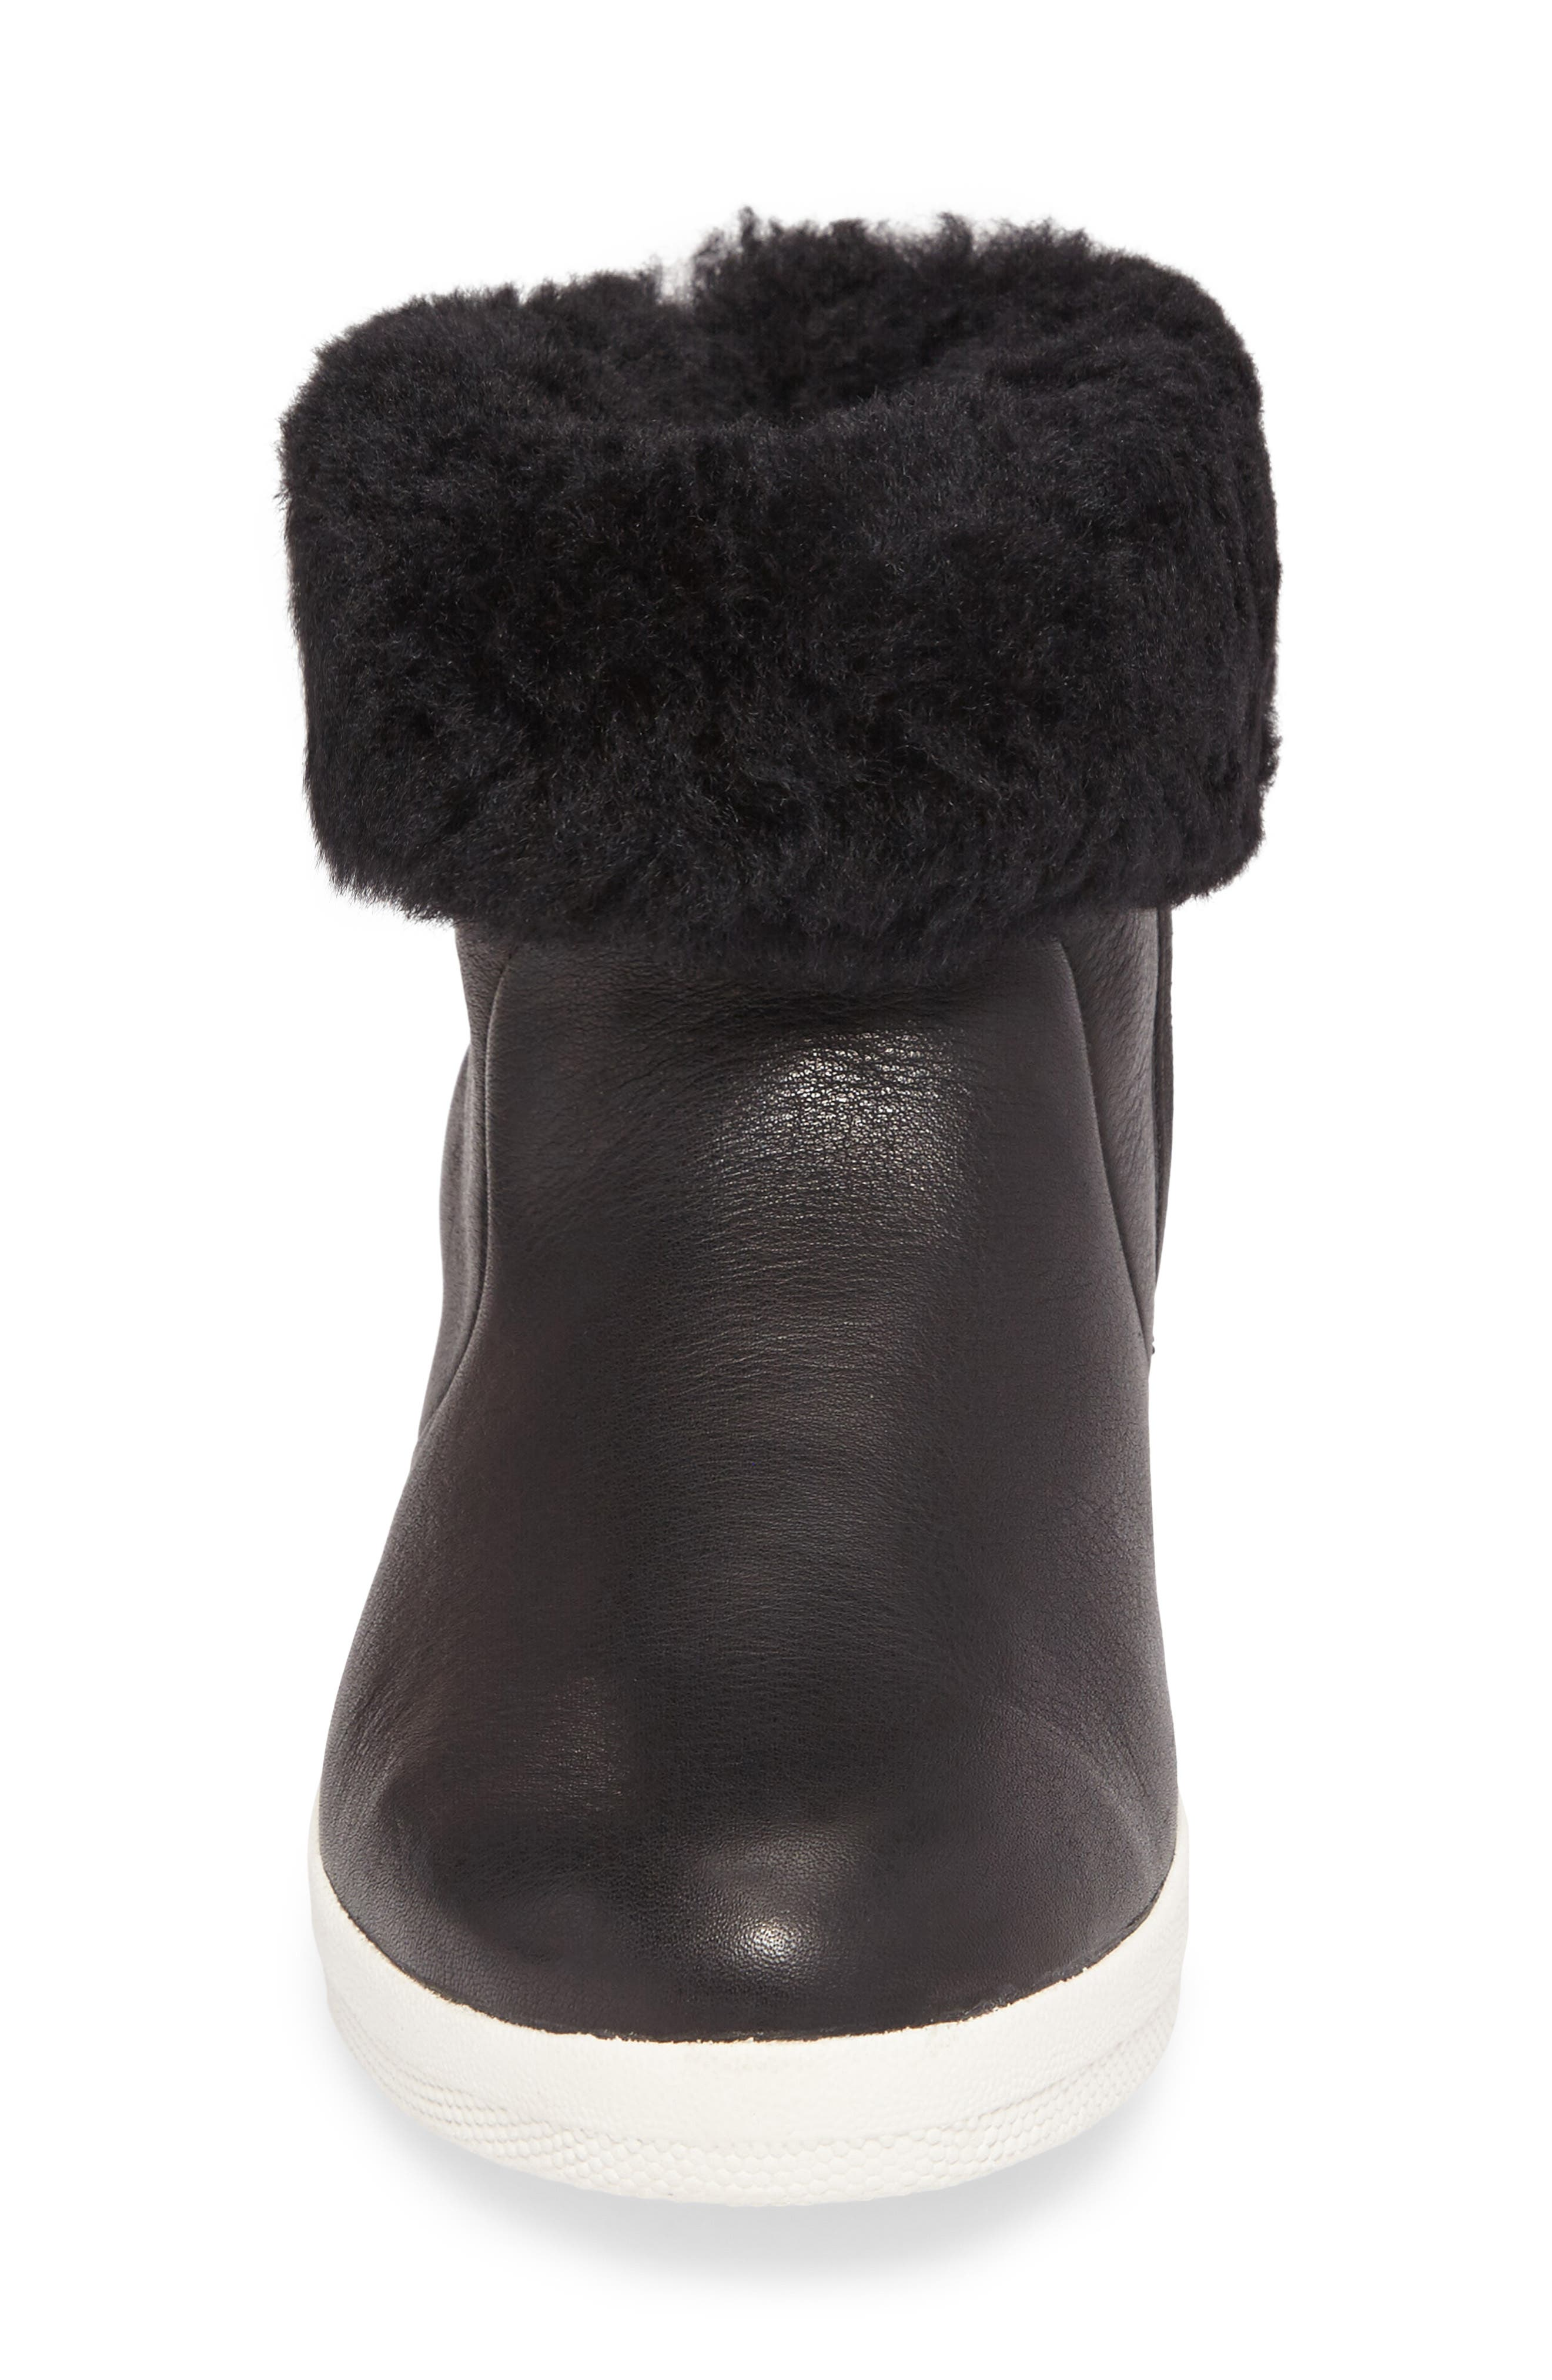 Skatebootie<sup>™</sup> with Genuine Shearling Cuff,                             Alternate thumbnail 7, color,